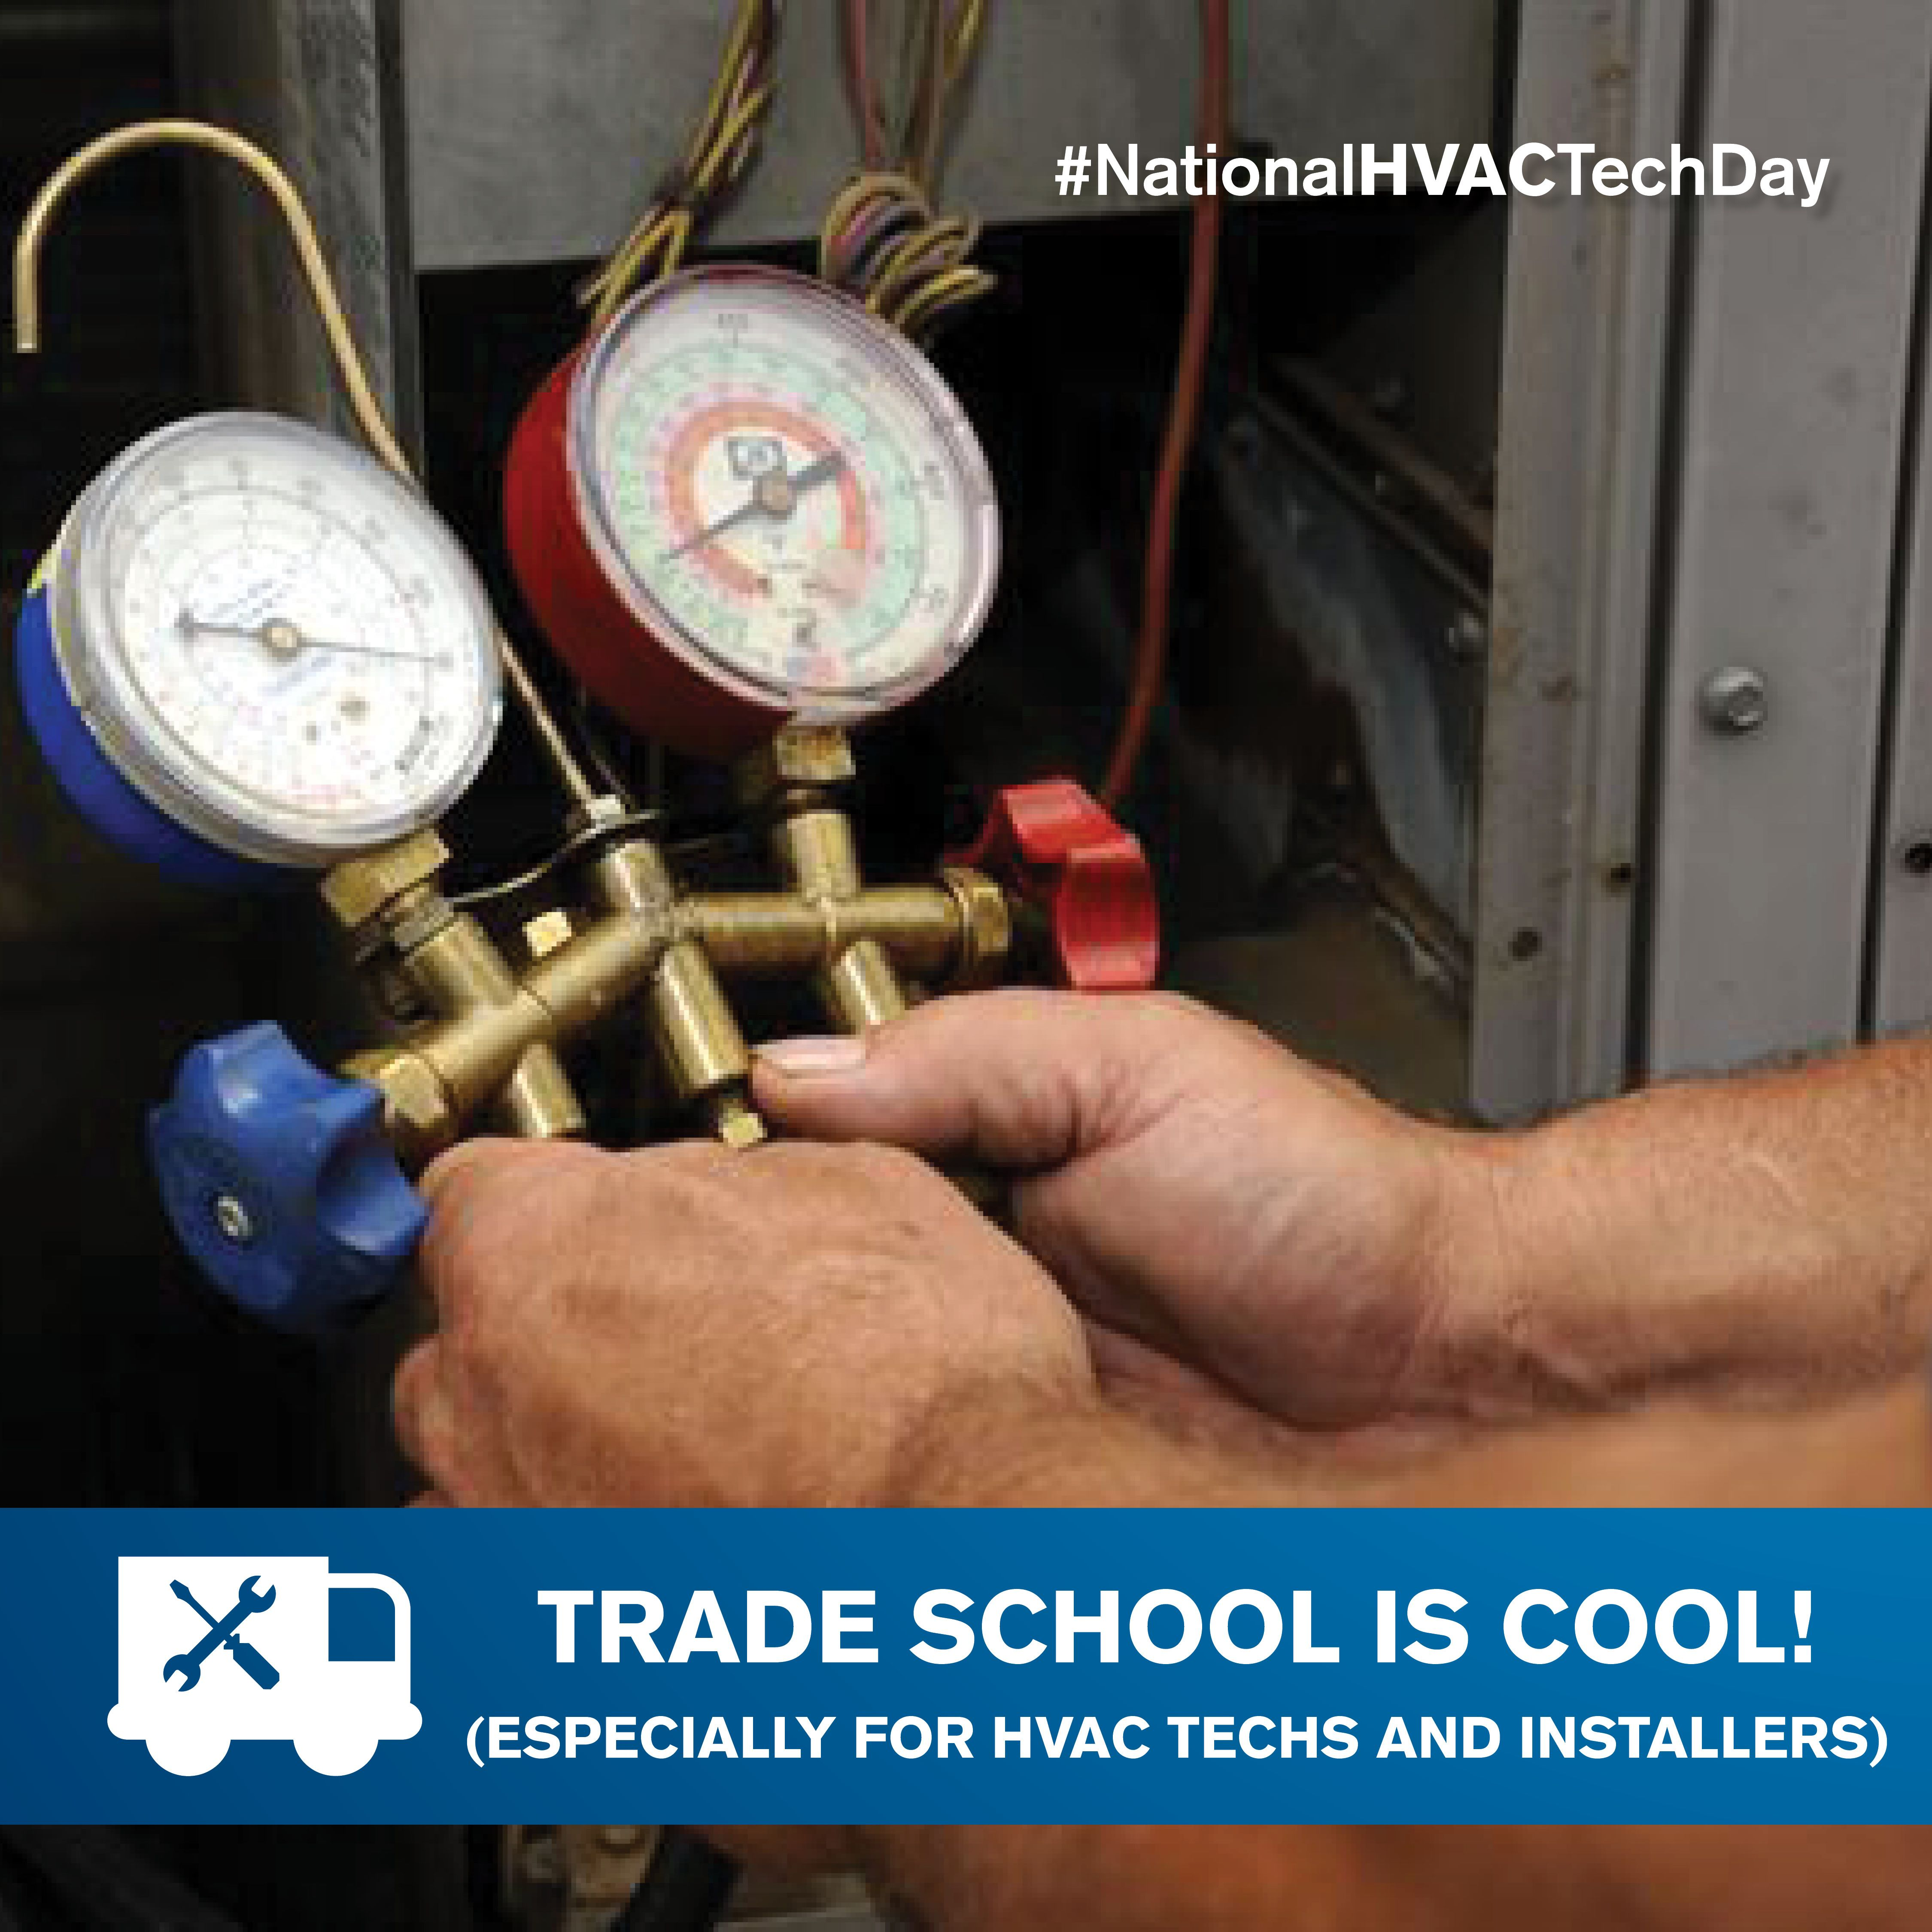 Pin by ARS Rescue Rooter on NationalHVACTechDay June 22